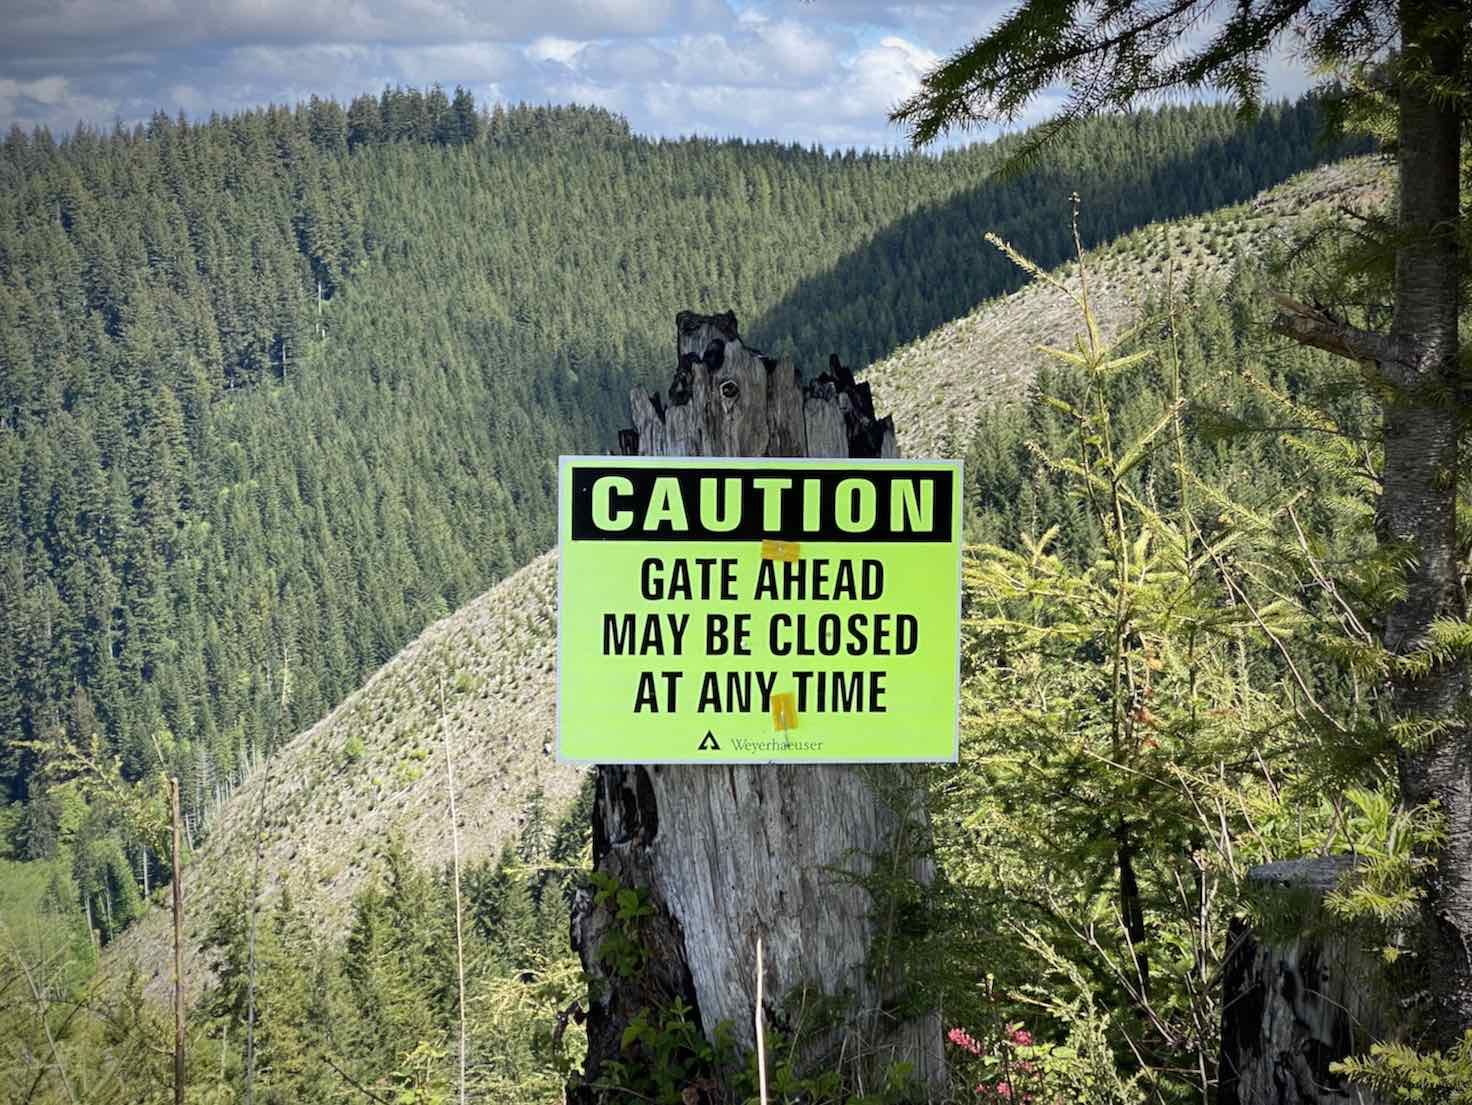 Weyerhaeuser sign for gate could be closed at any time.